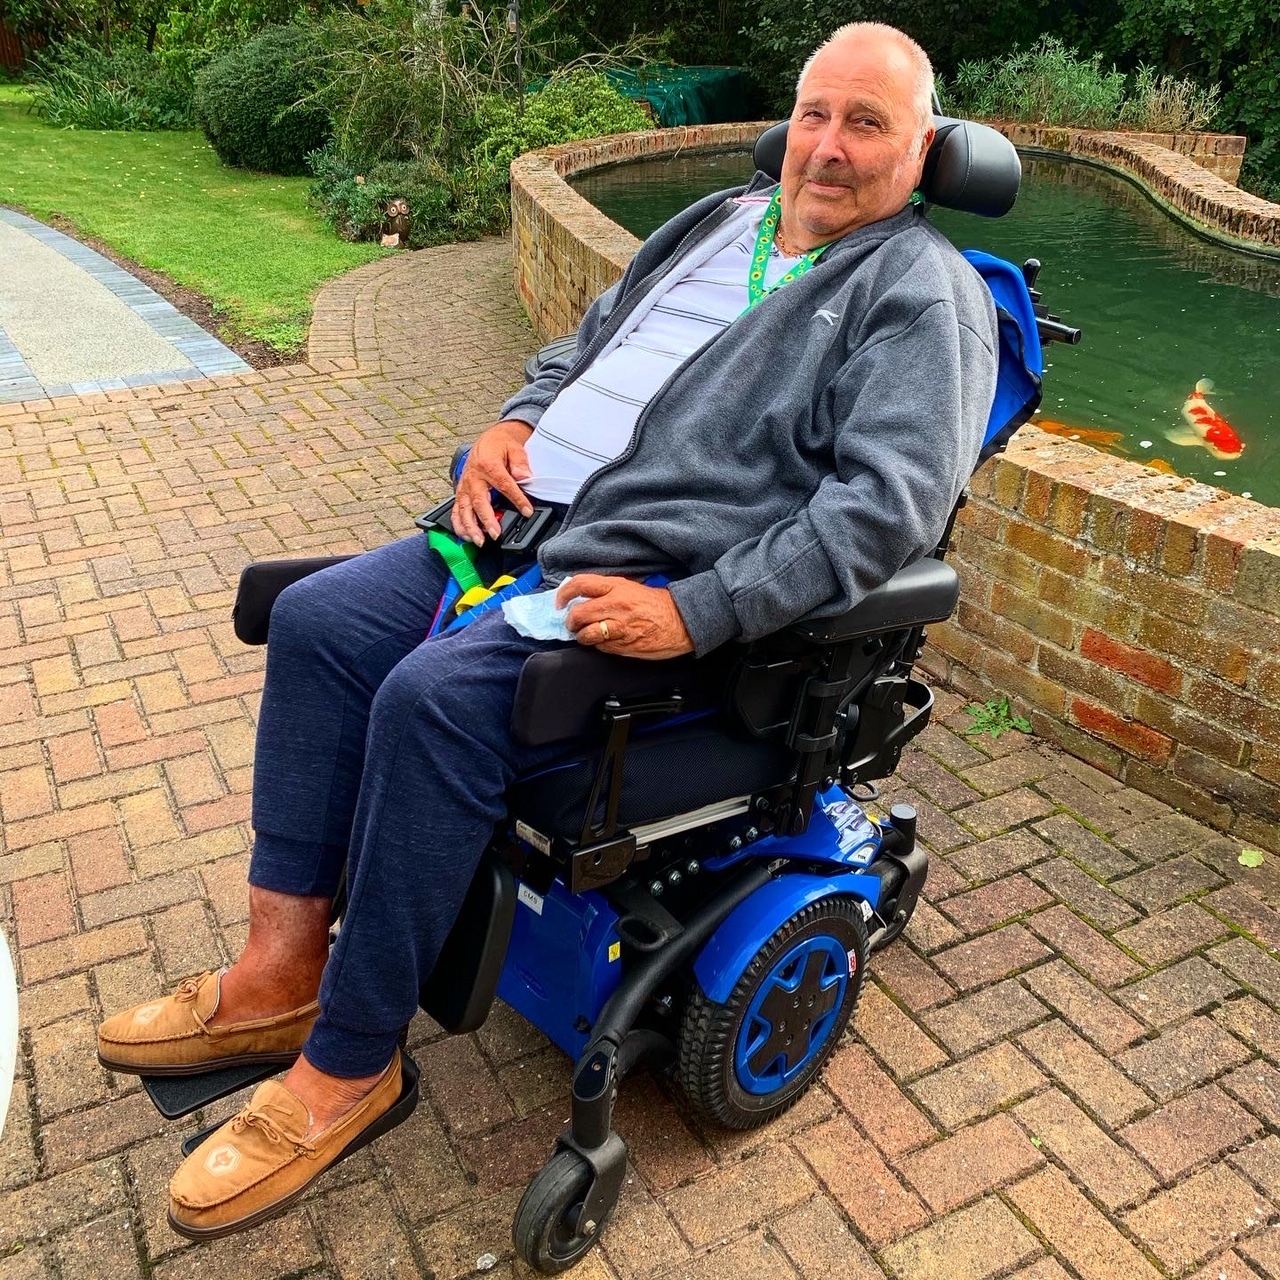 invacare tdx sp2 nb indoor/outdoor - clinical mobility solutions testimonial